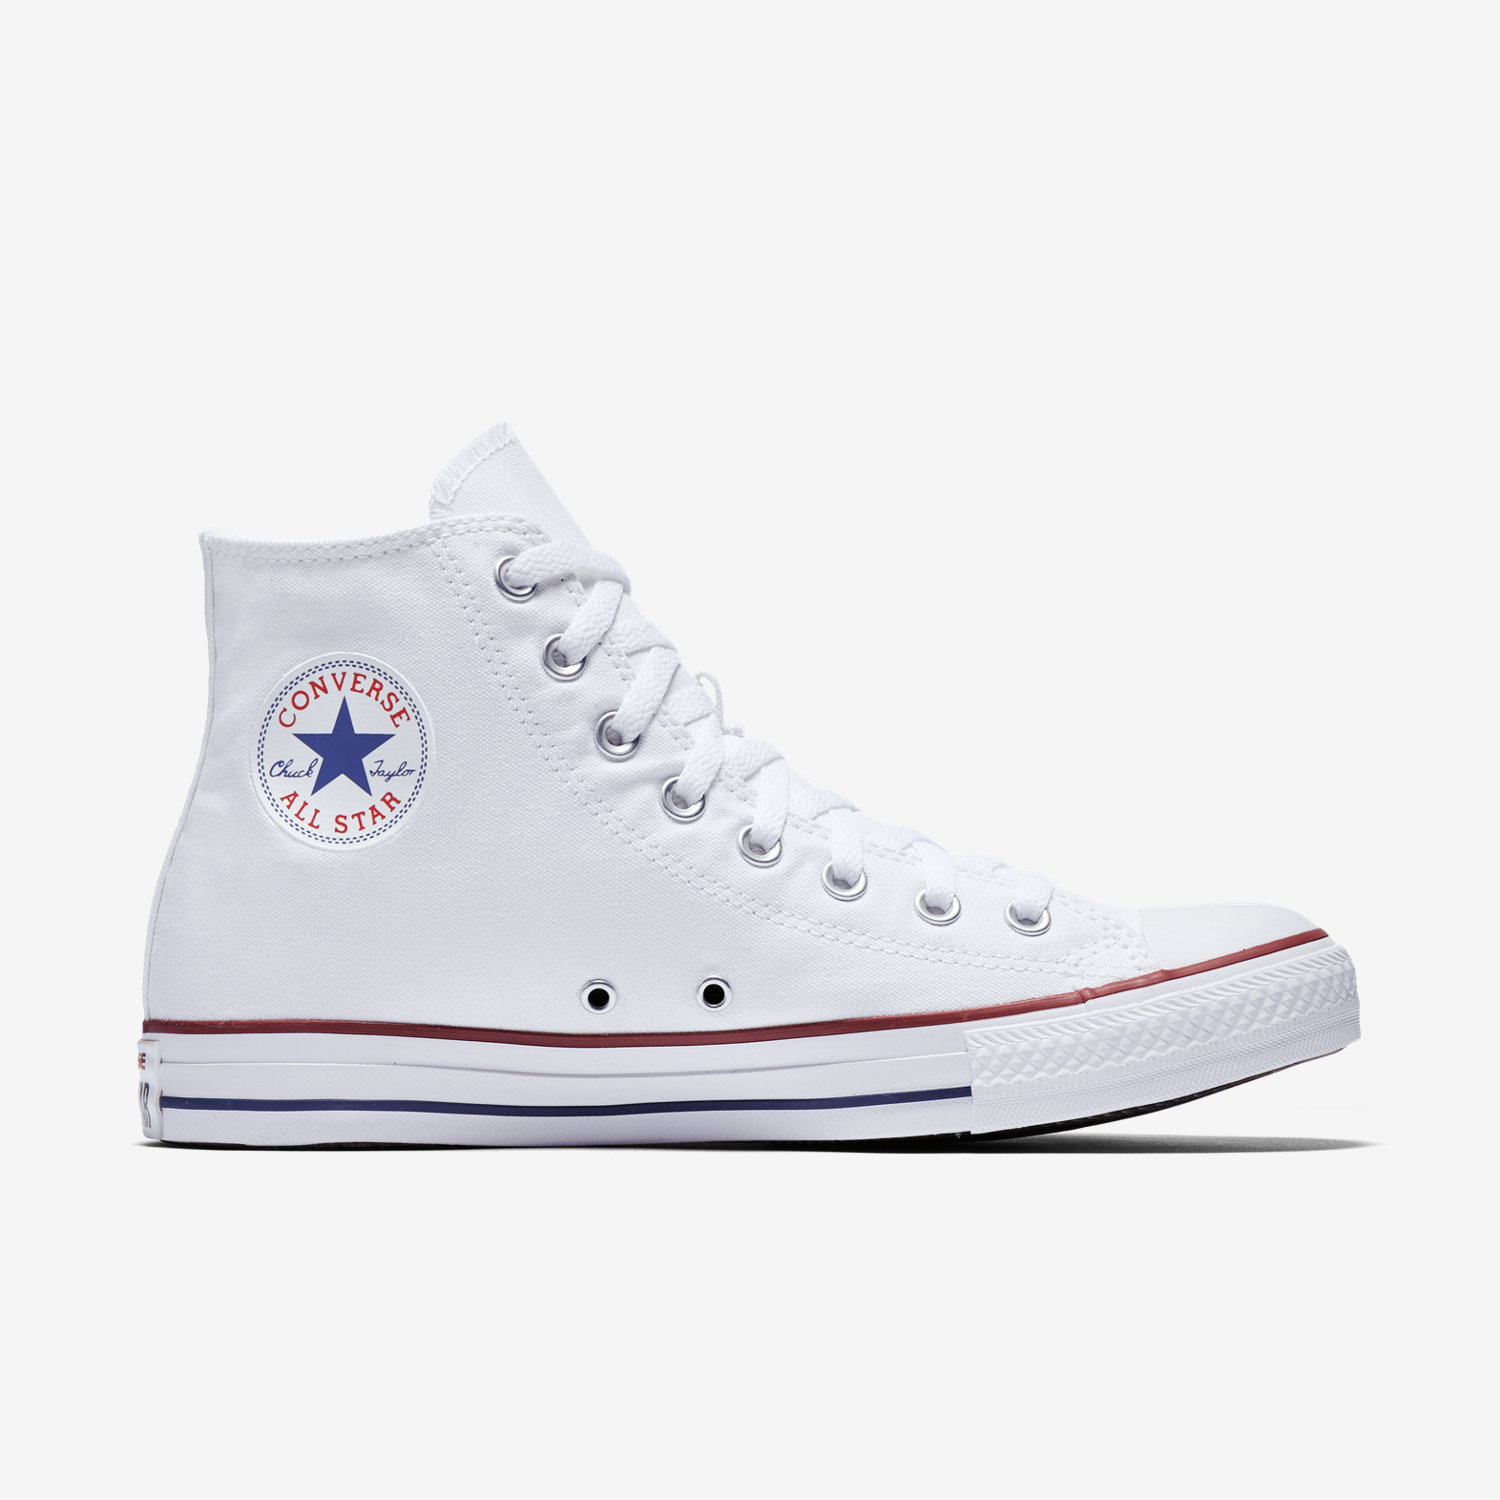 White high top converse – get in style now